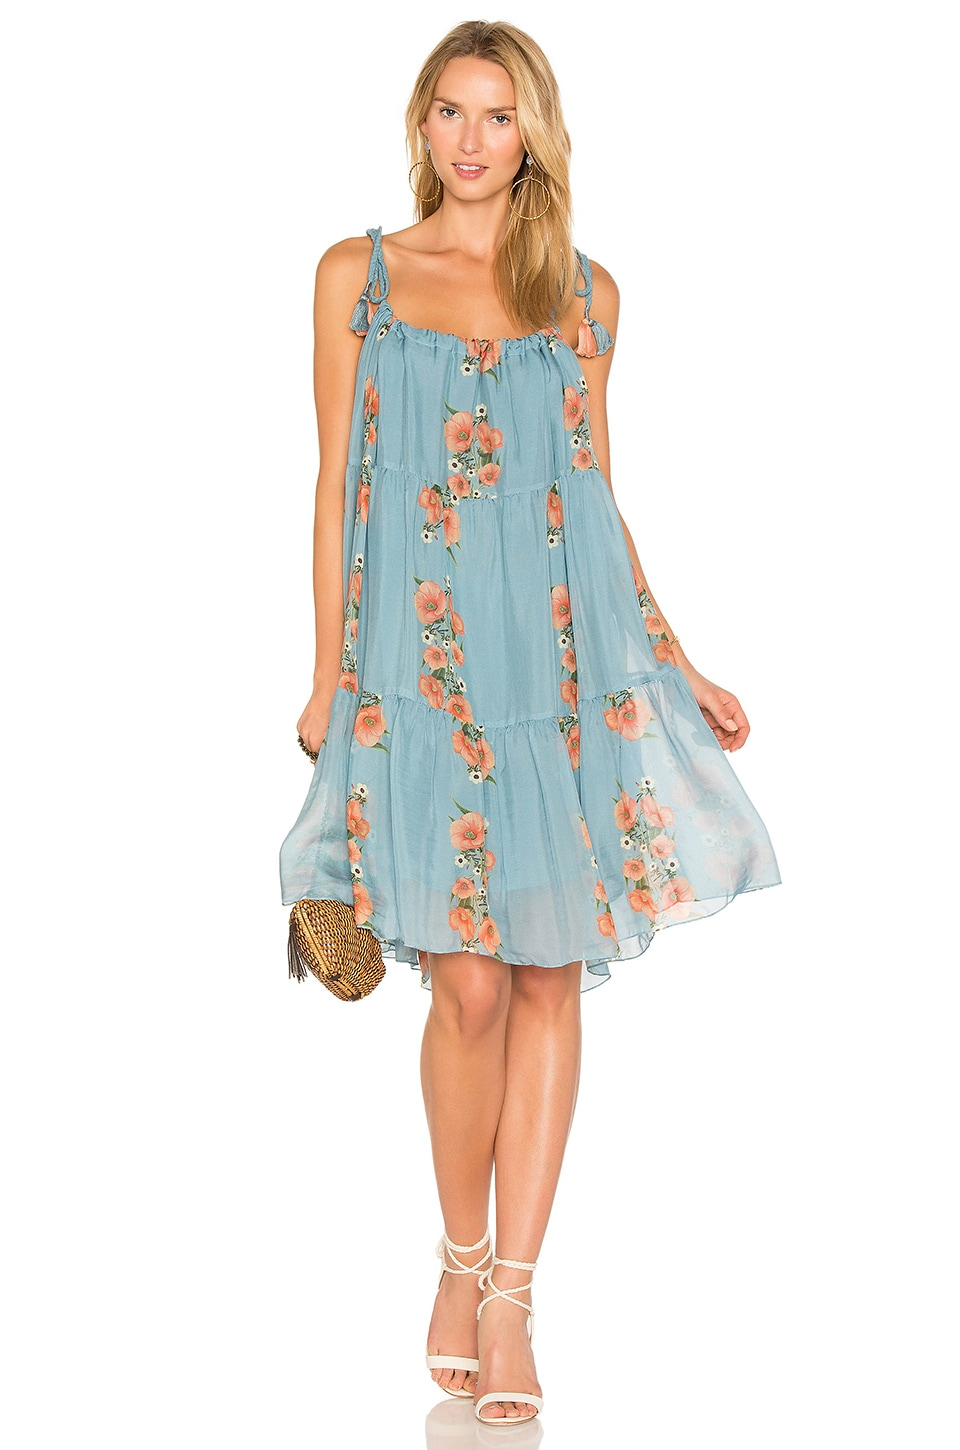 Carolina K Three Way Dress in Blue